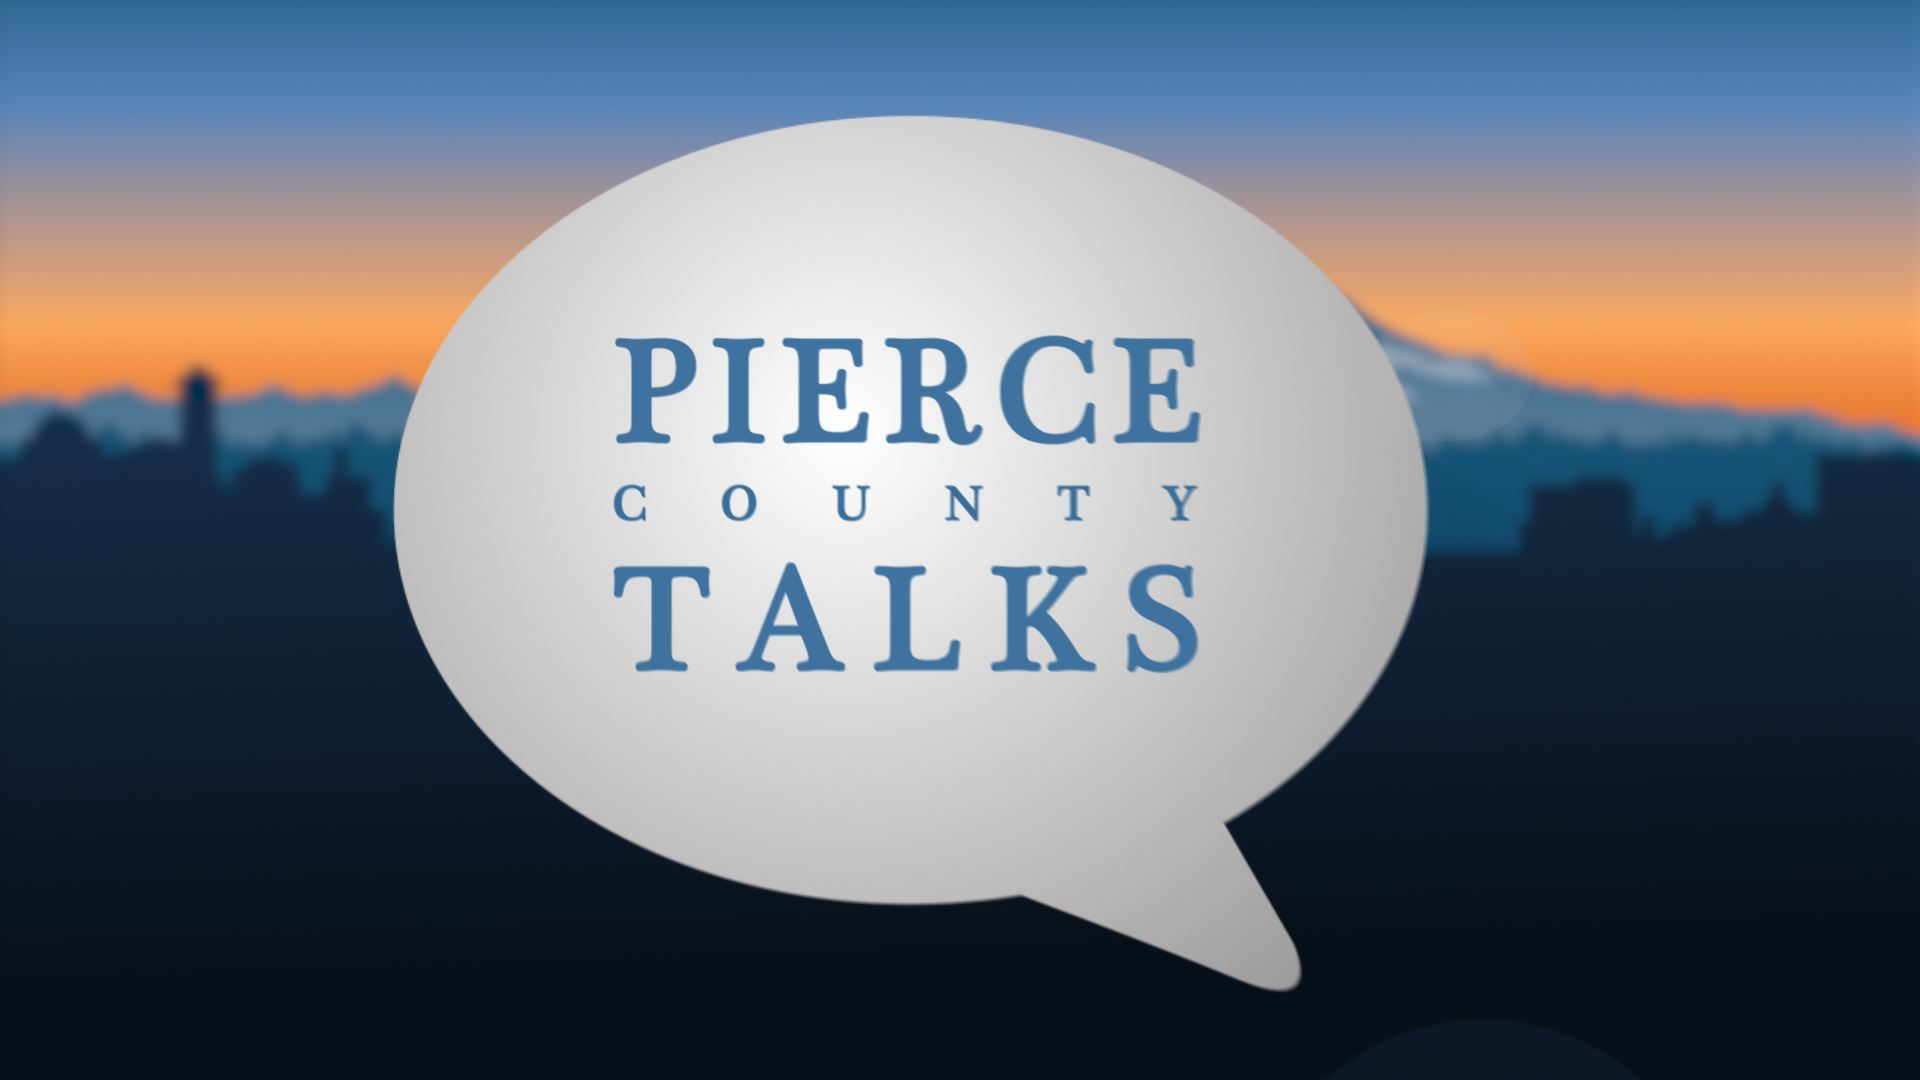 Pierce County Talks OPEN